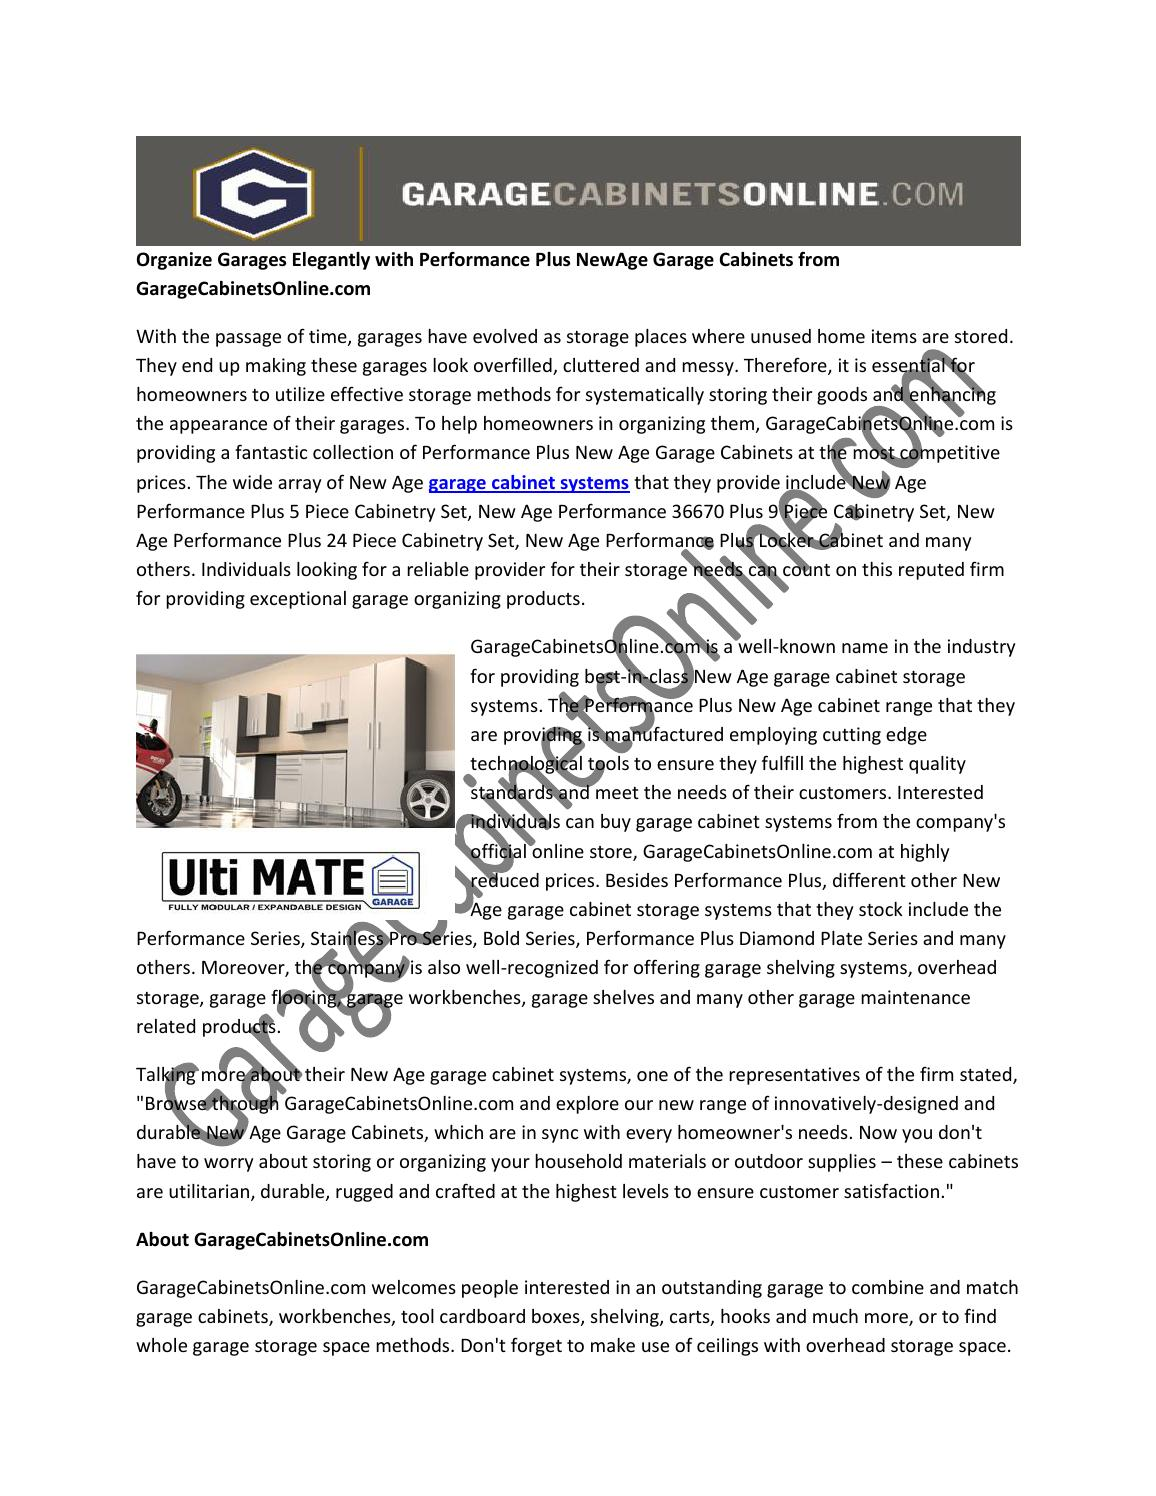 Organize Garages Elegantly With Performance Plus Newage Garage Cabinets  From Garagecabinetsonline By Garagecabinetsvideos   Issuu